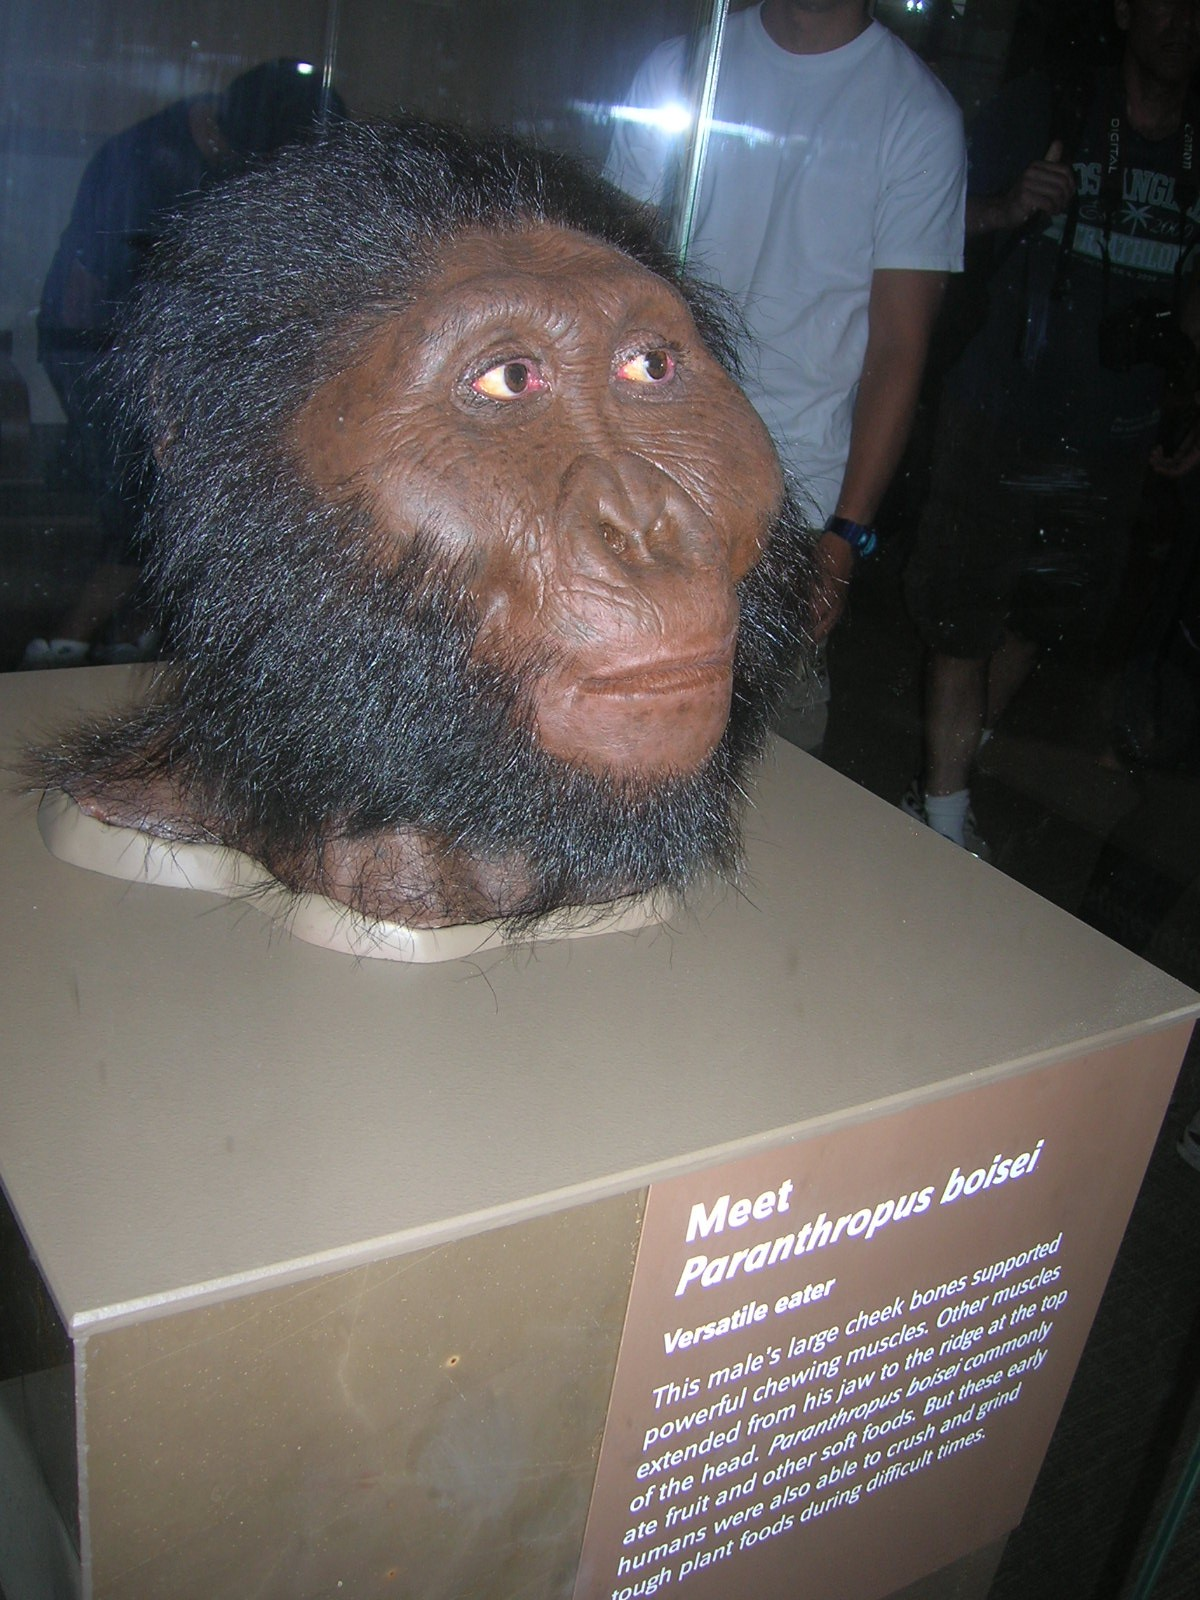 Paranthropus boisei (skull pictured in first photo in post)